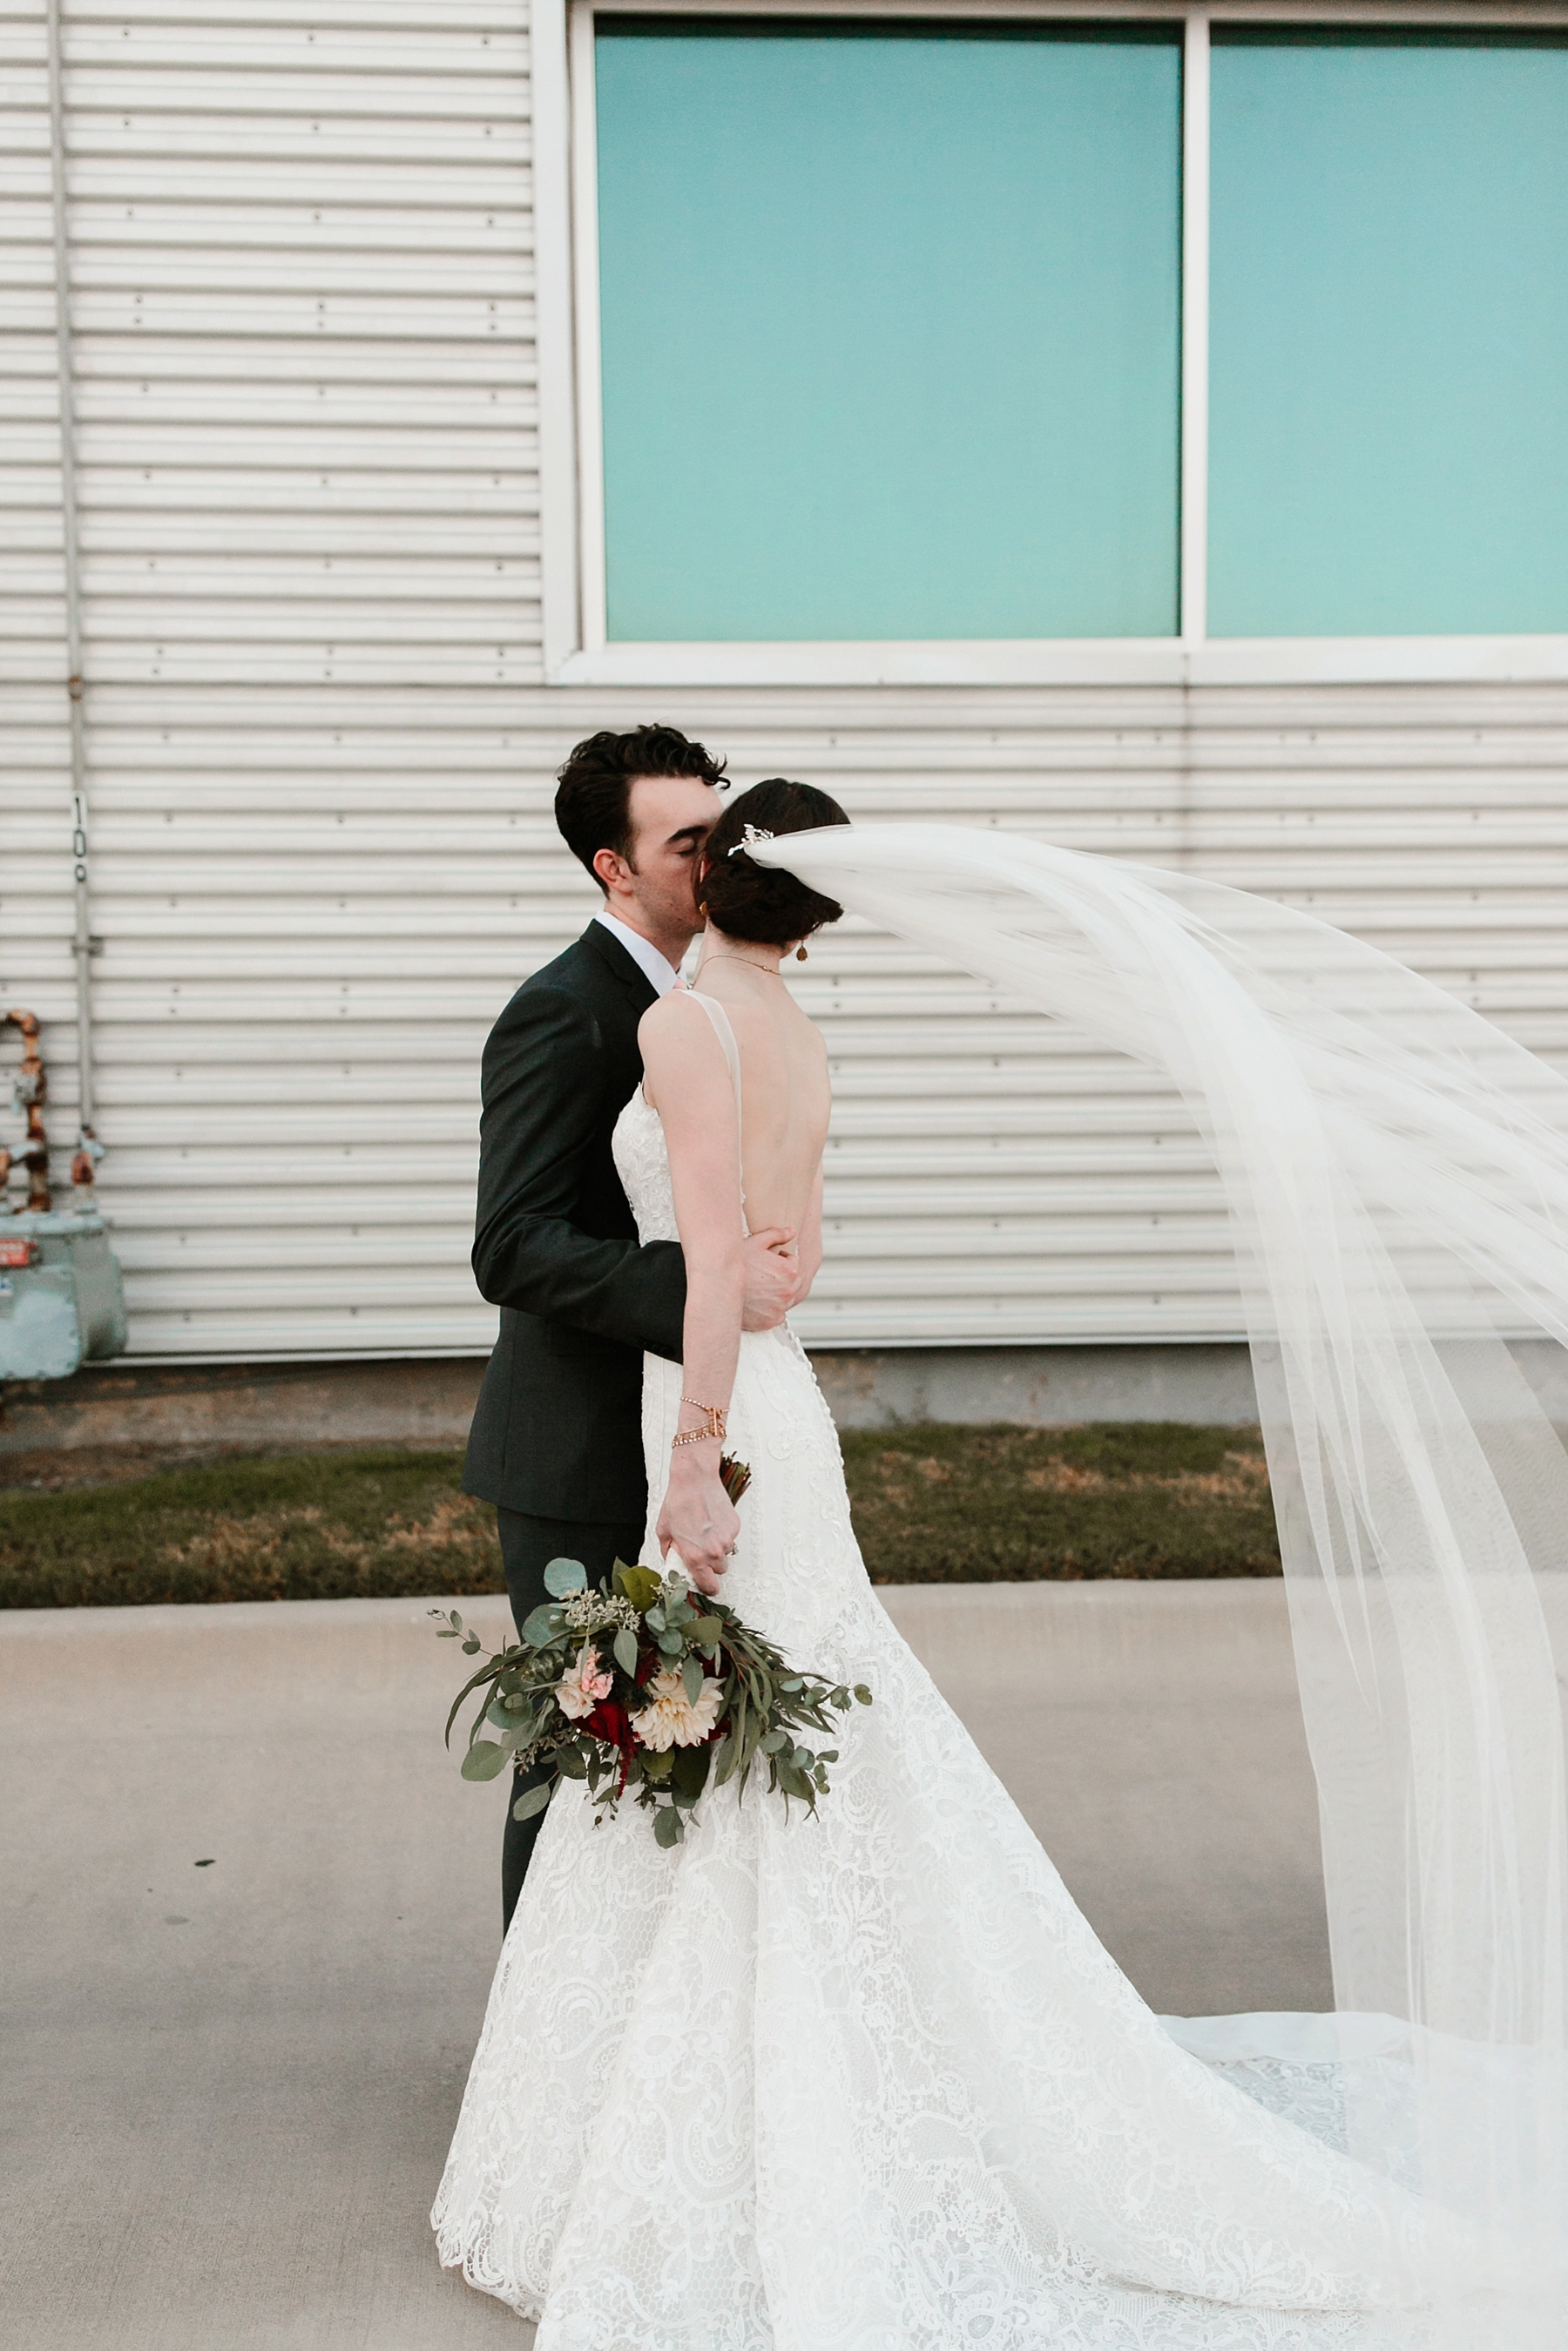 Emily + Caleb _ an elegant, intentional, industrial style wedding with navy + gold accents at 6500 in Dallas, TX by North Texas Wedding Photographer Rachel Meagan Photography _ 126